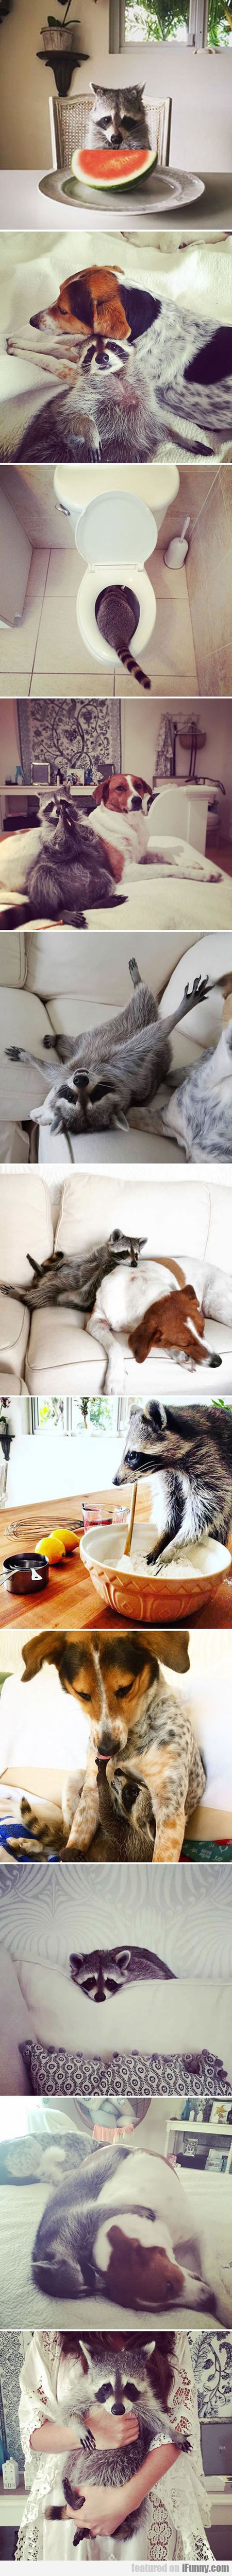 Orphaned Raccoon Rescued By Dogs Thinks He's A Dog